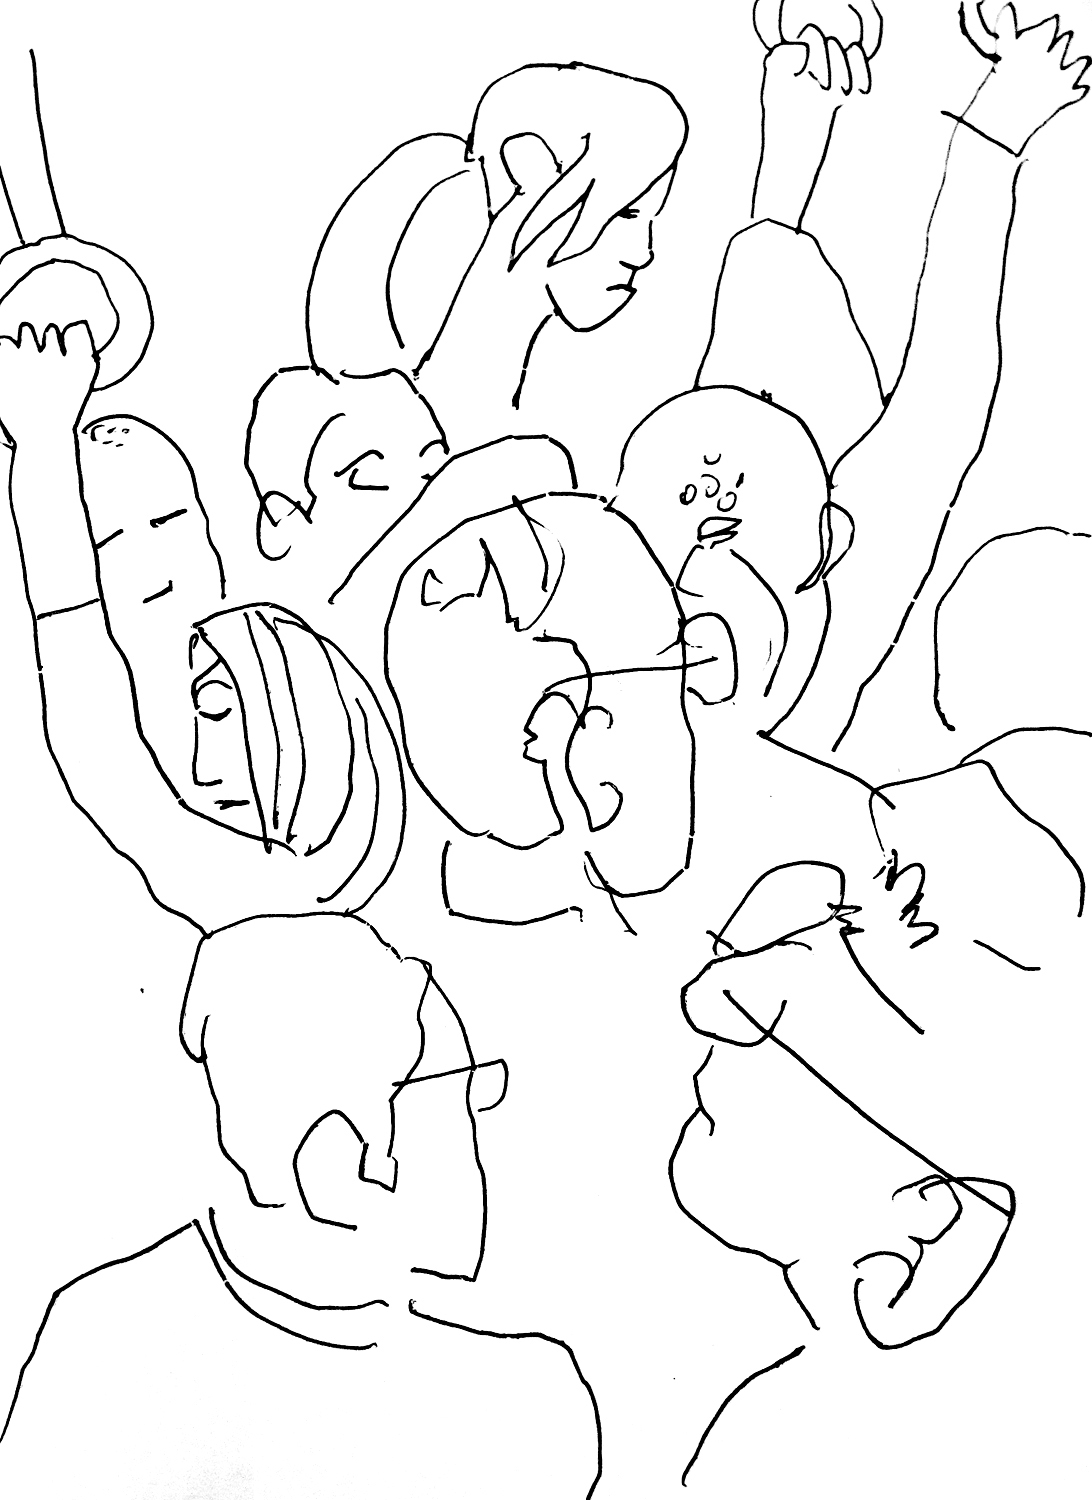 Sketch made on a Tokyo Train (preparatory drawing for 'Tokyo Subway' painting)